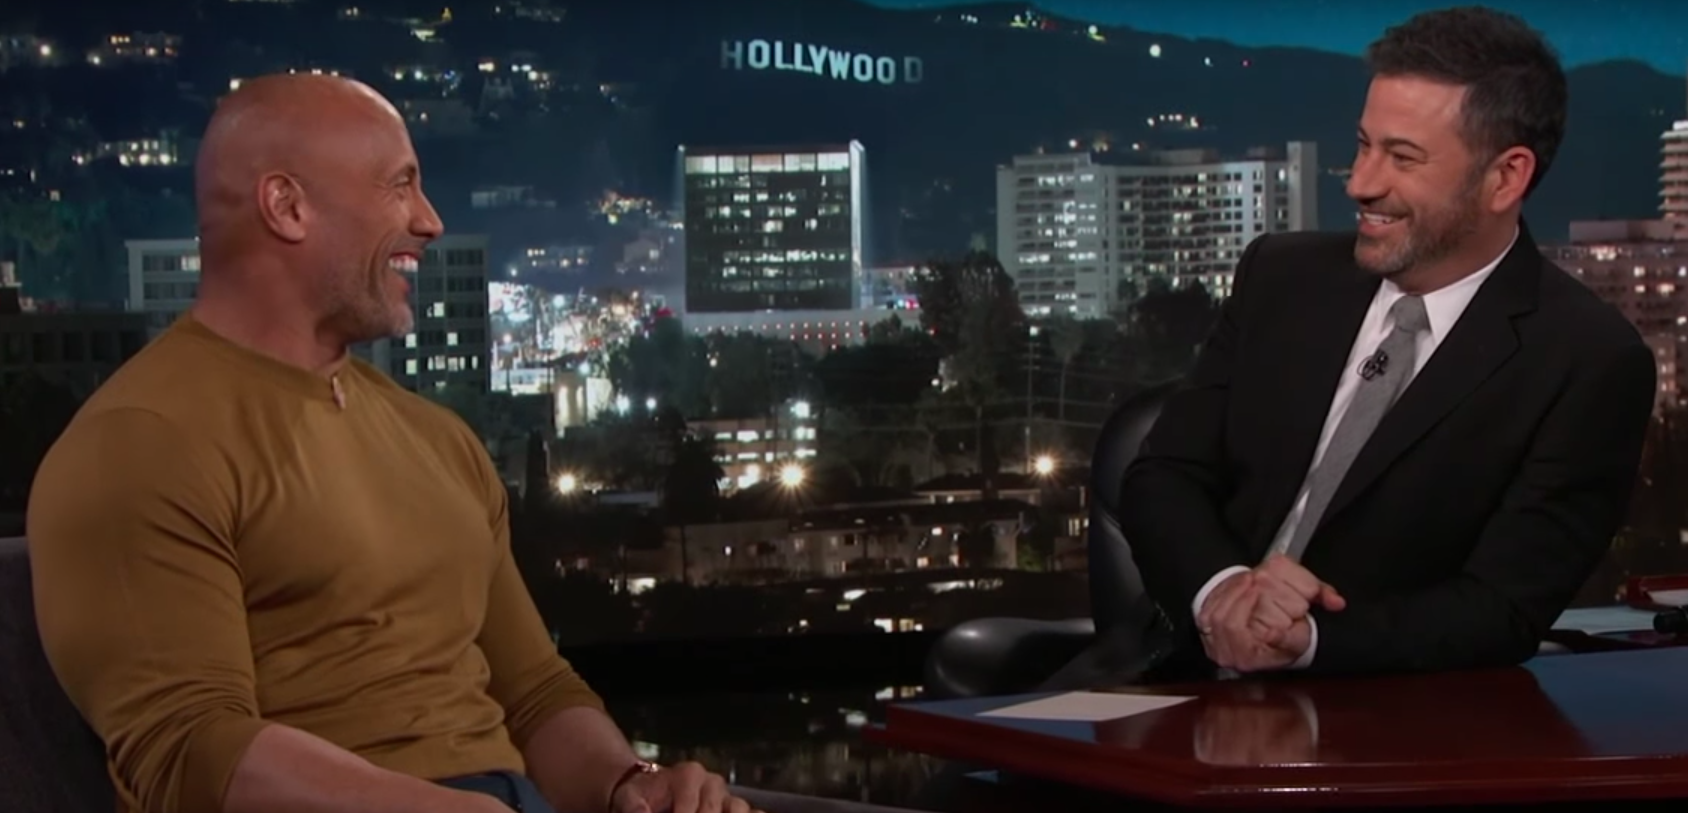 Dwayne Johnson, AKA The Rock, on 'Jimmy Kimmel Live!' asking Jimmy Kimmel to help deliver his baby